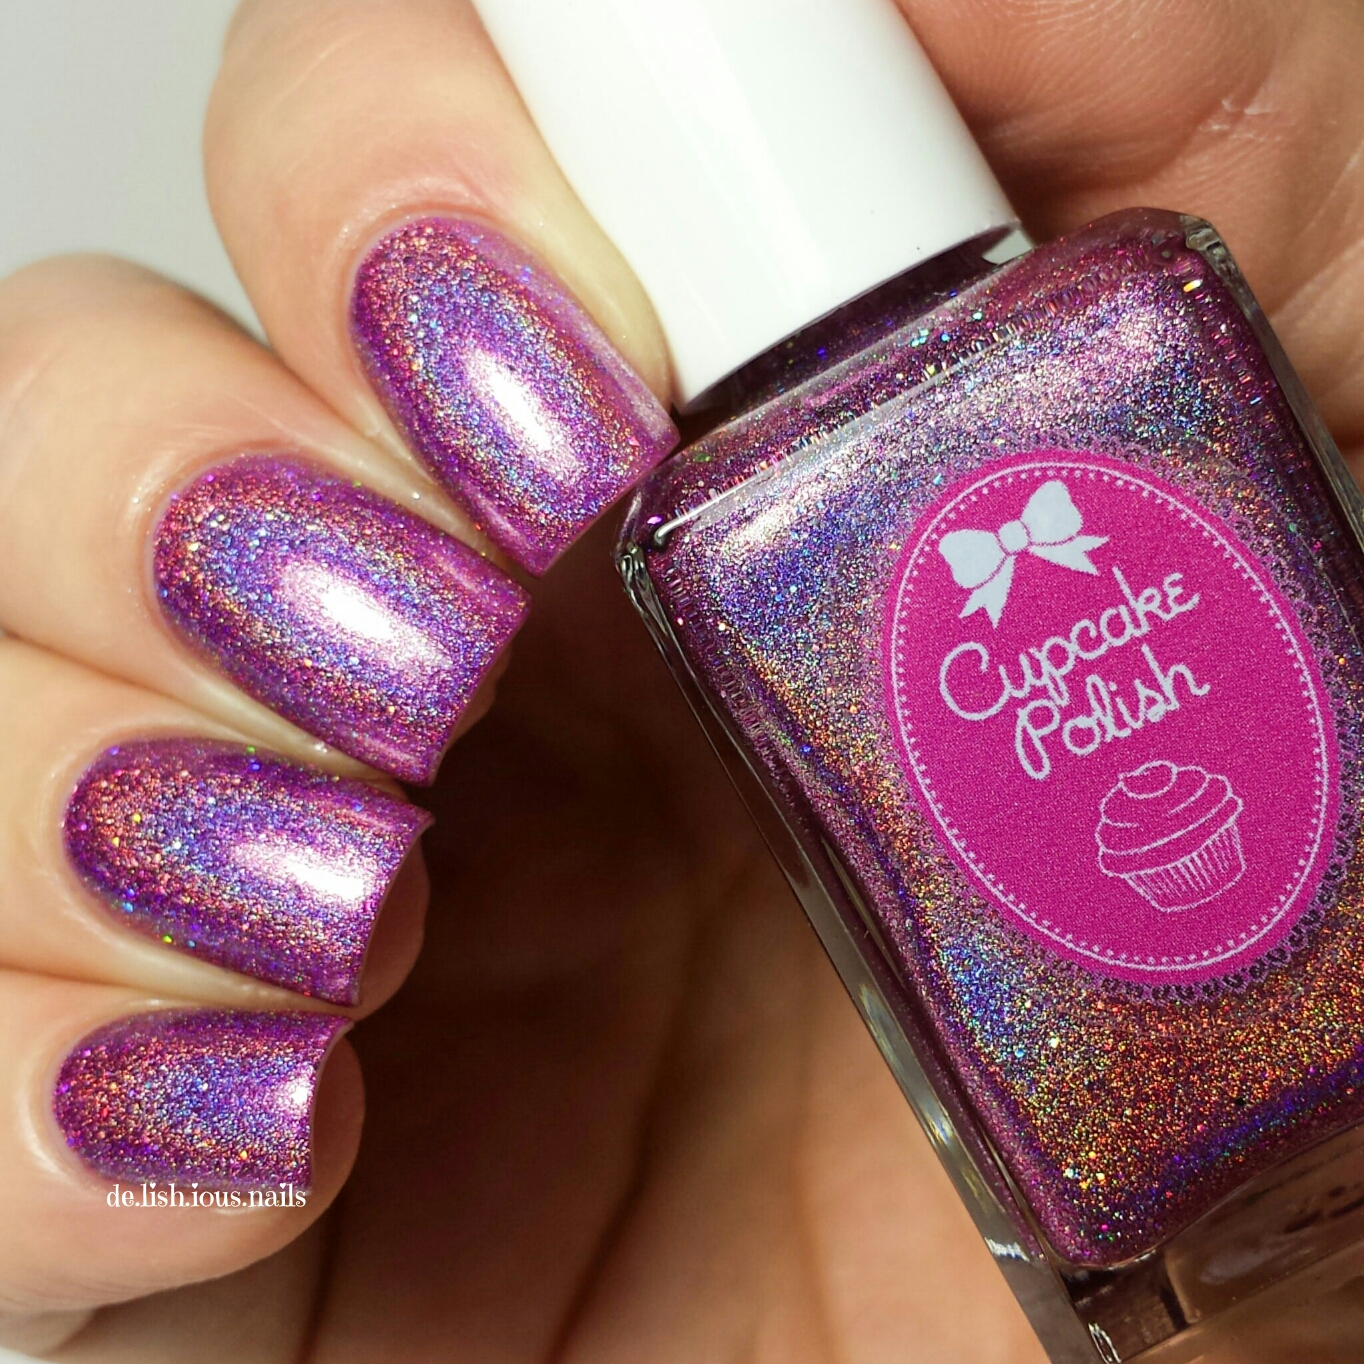 wpid-cupcake-polish-winter-2015-merry-5.jpg.jpeg